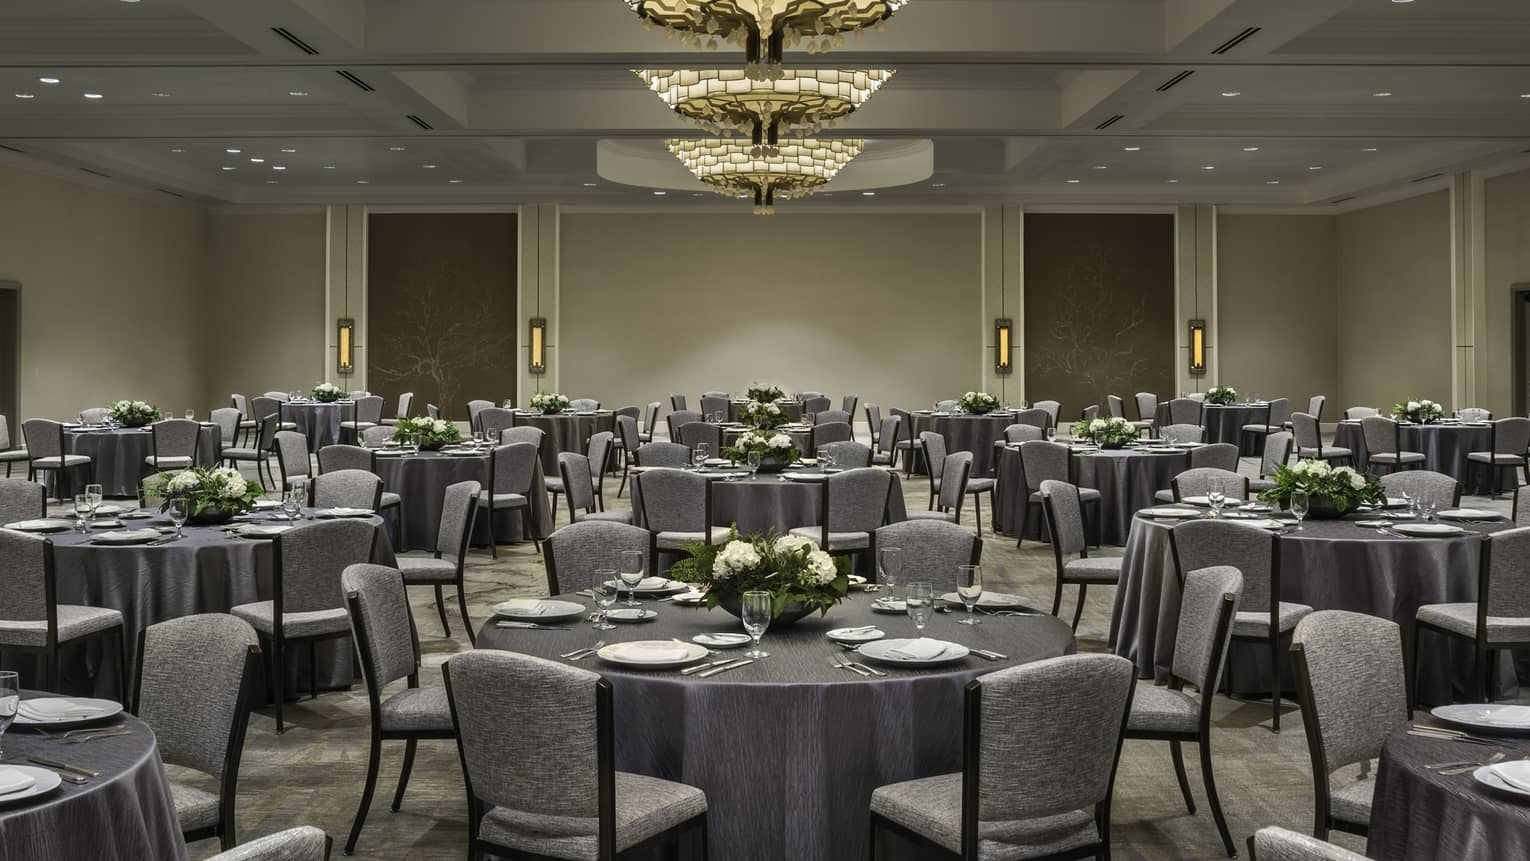 Round banquet tables with grey linens, chairs in ballroom